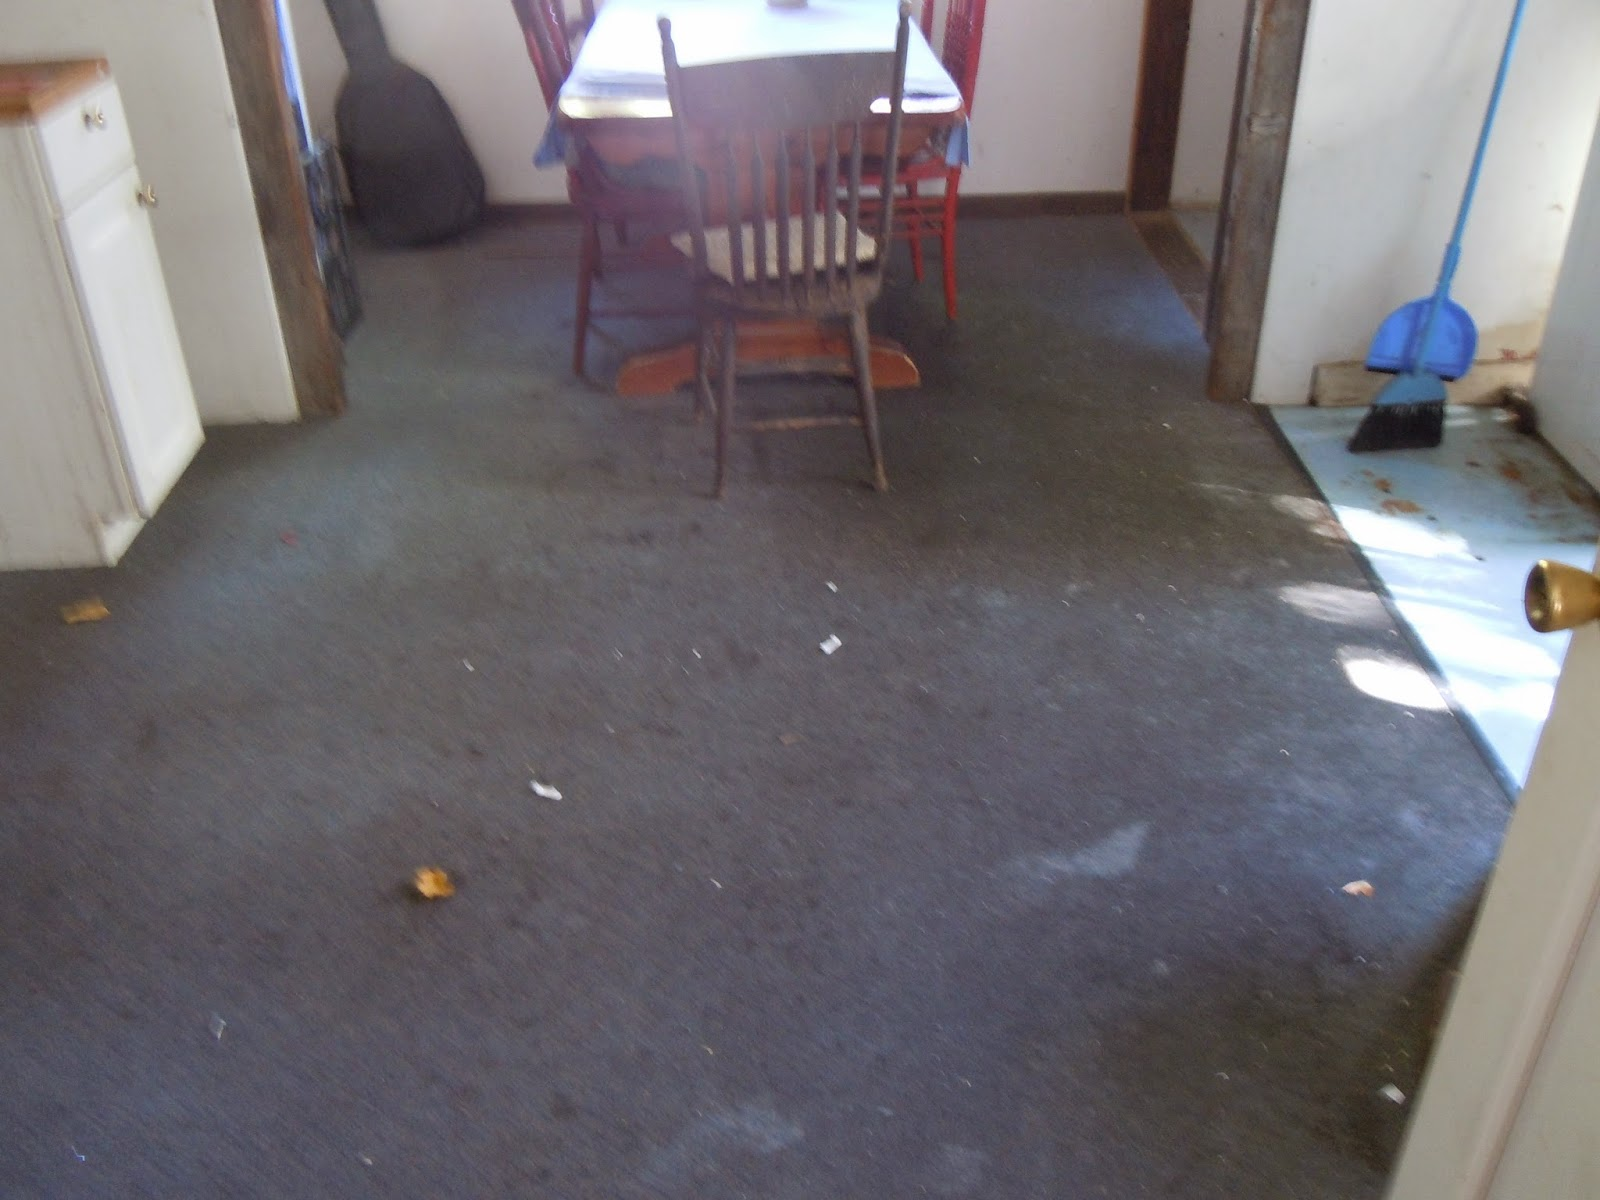 Living designs a paper bag floor over asbestos linoleum old rug on left new linoleum on right dailygadgetfo Images